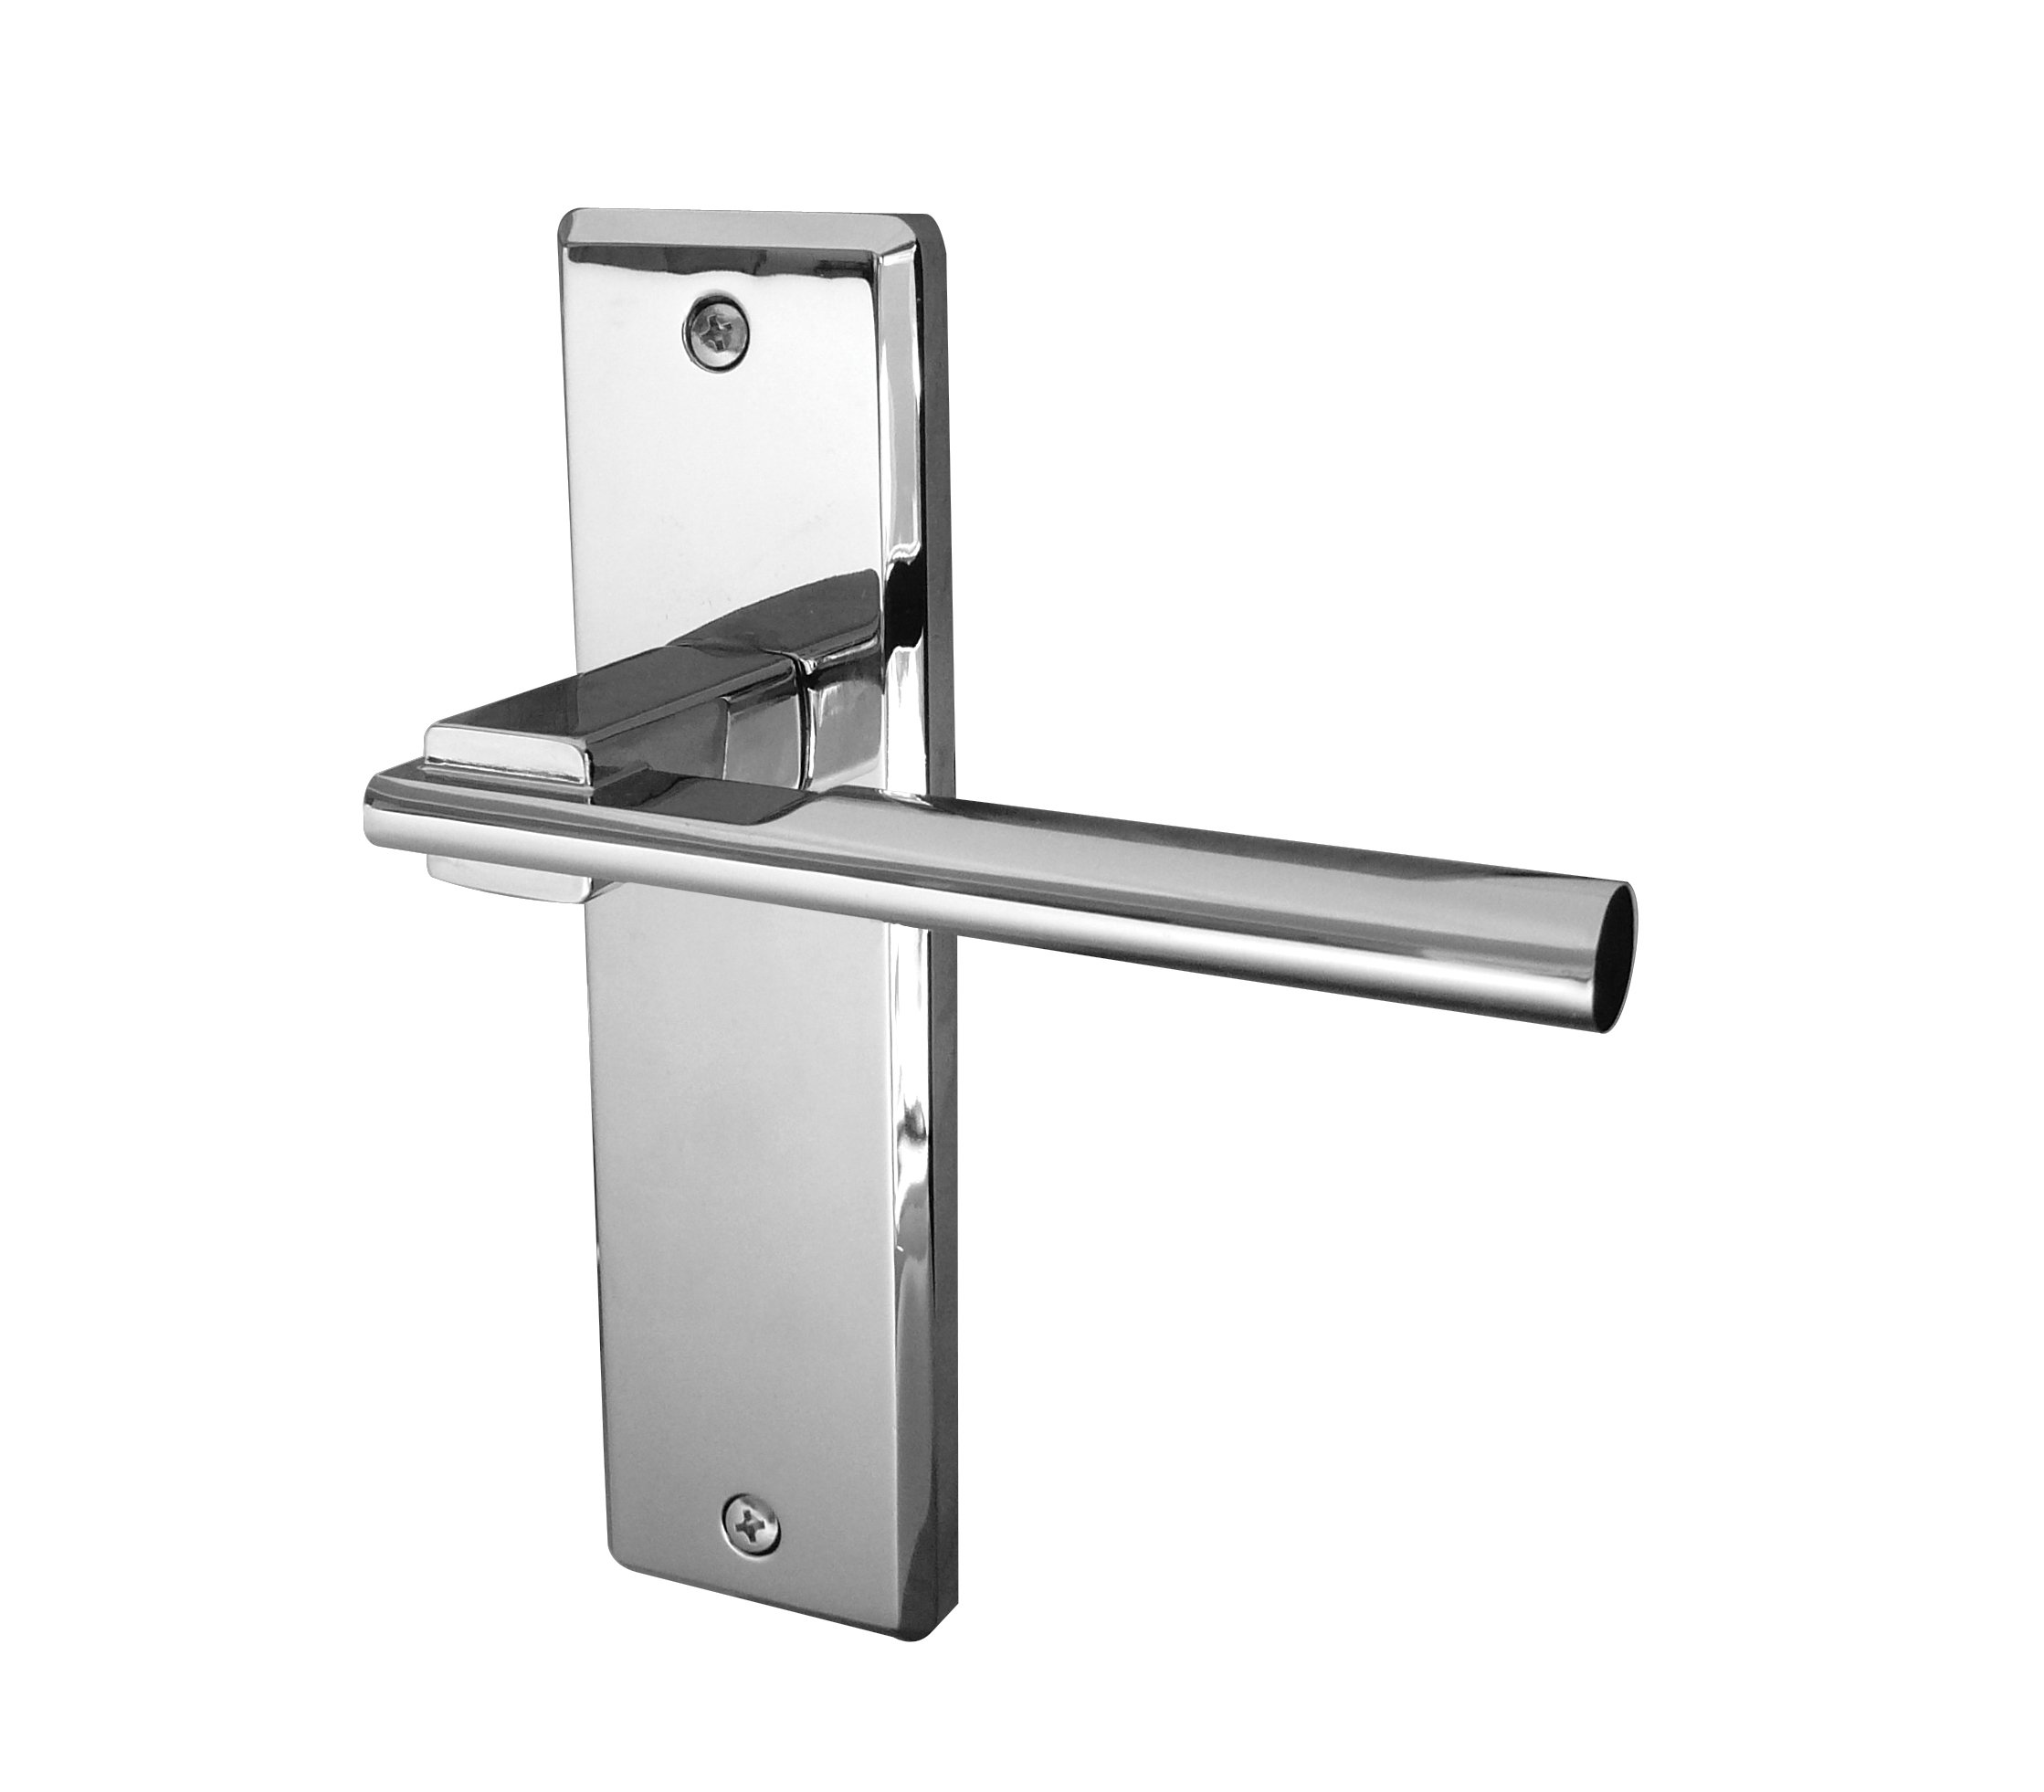 Levers_on_plate - Delta Lever Lock